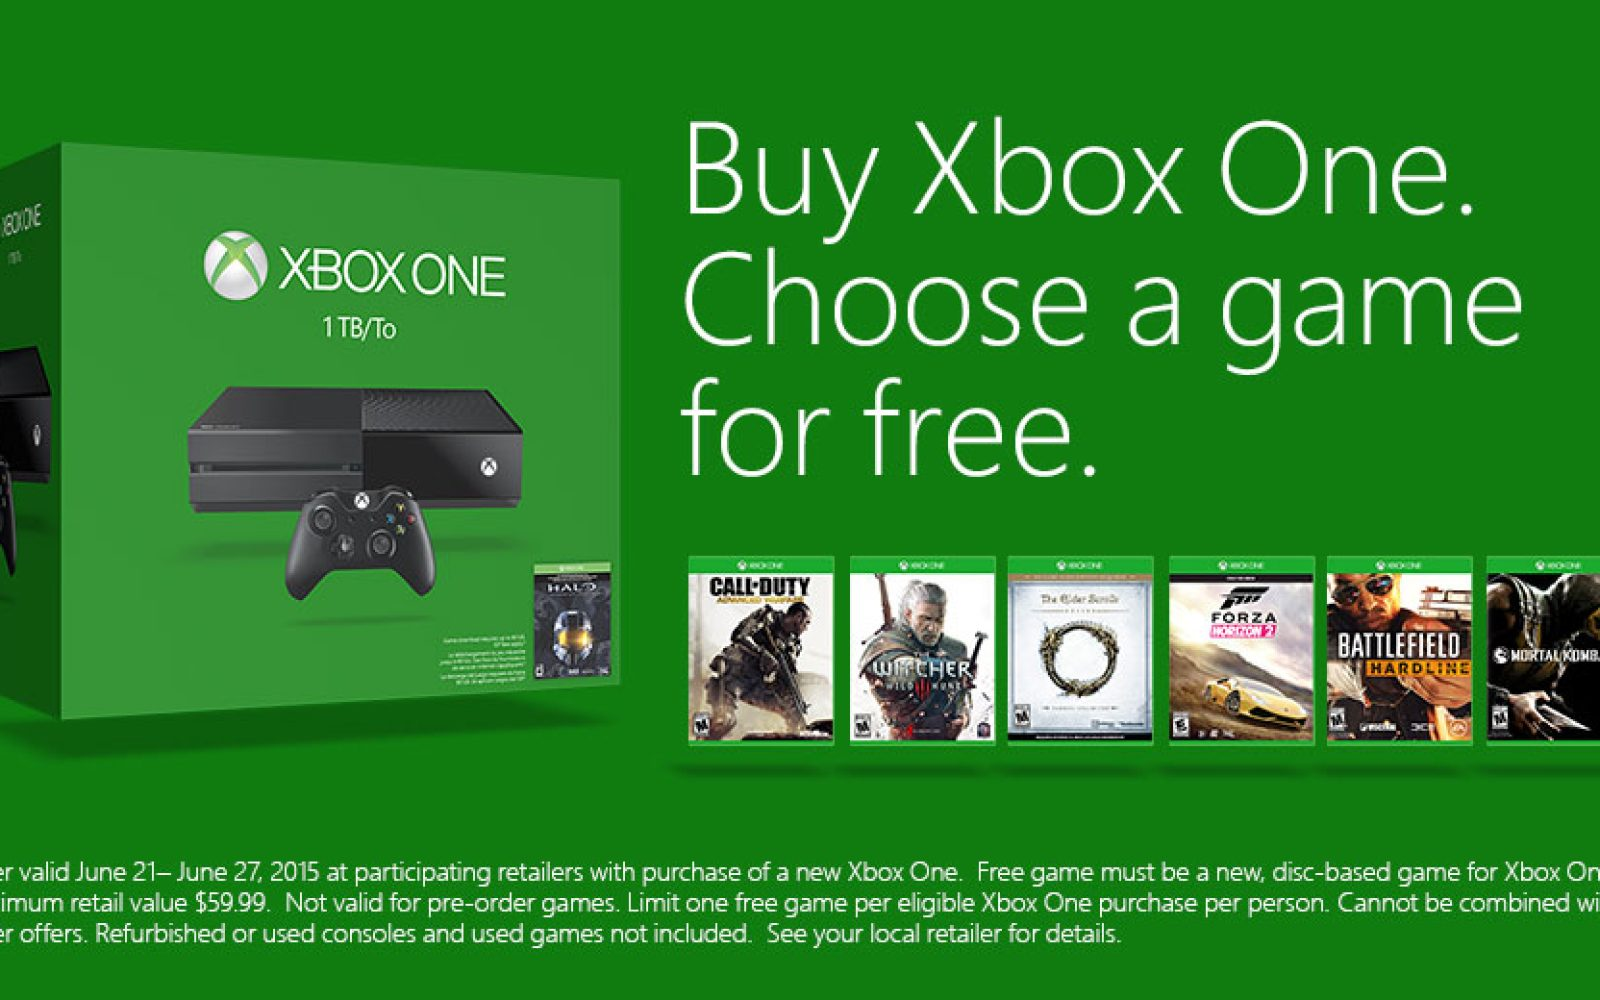 Get a free game of your choosing when you buy an Xbox One